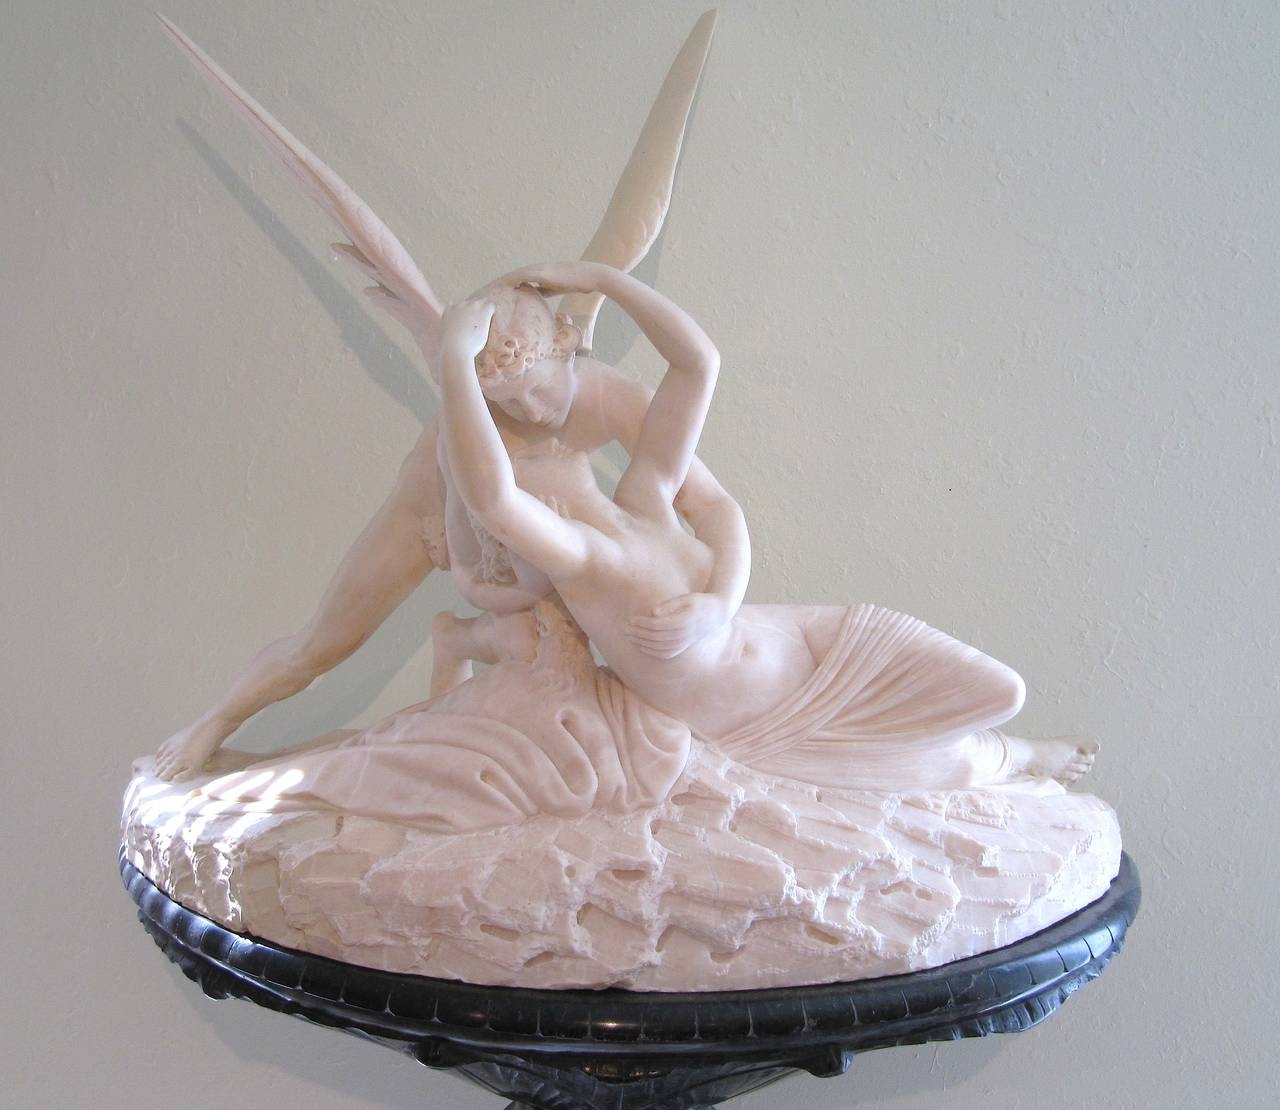 Statuary Marble Palatial Marble Sculpture By Barzanti.  'Cupid's Kiss' on Marble Pedestal For Sale